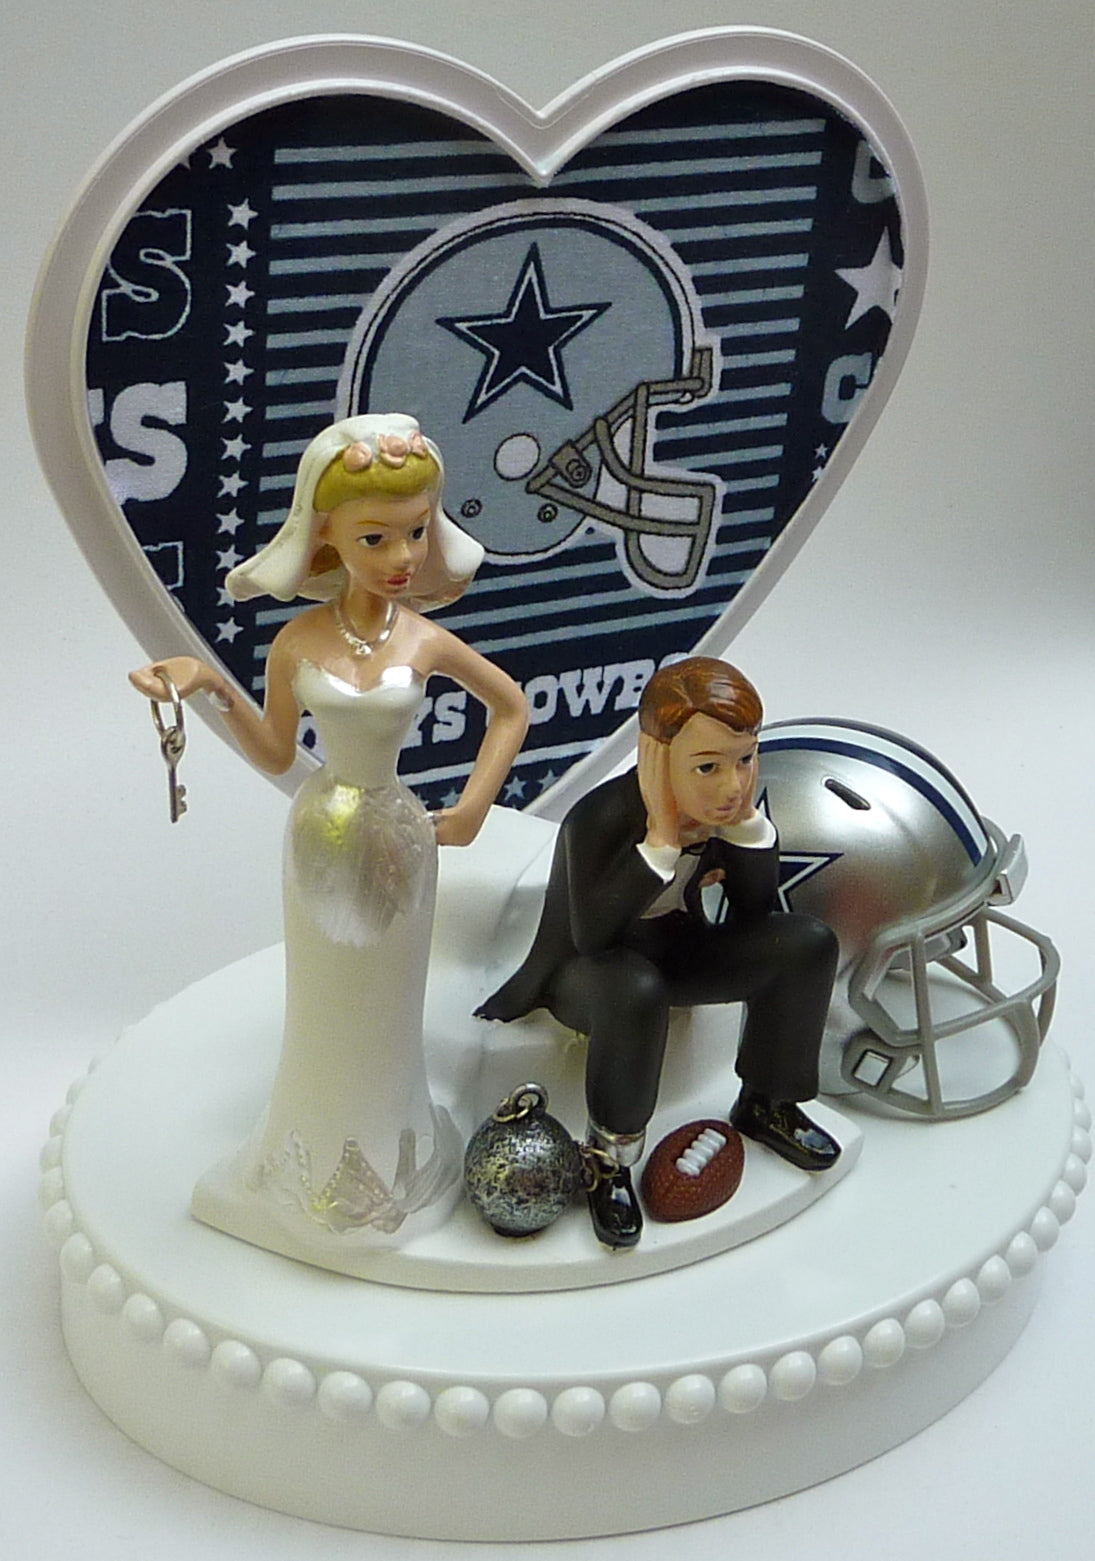 Wedding Cake Topper - Dallas Cowboys Football Themed Key (Blue Fabric on Heart)